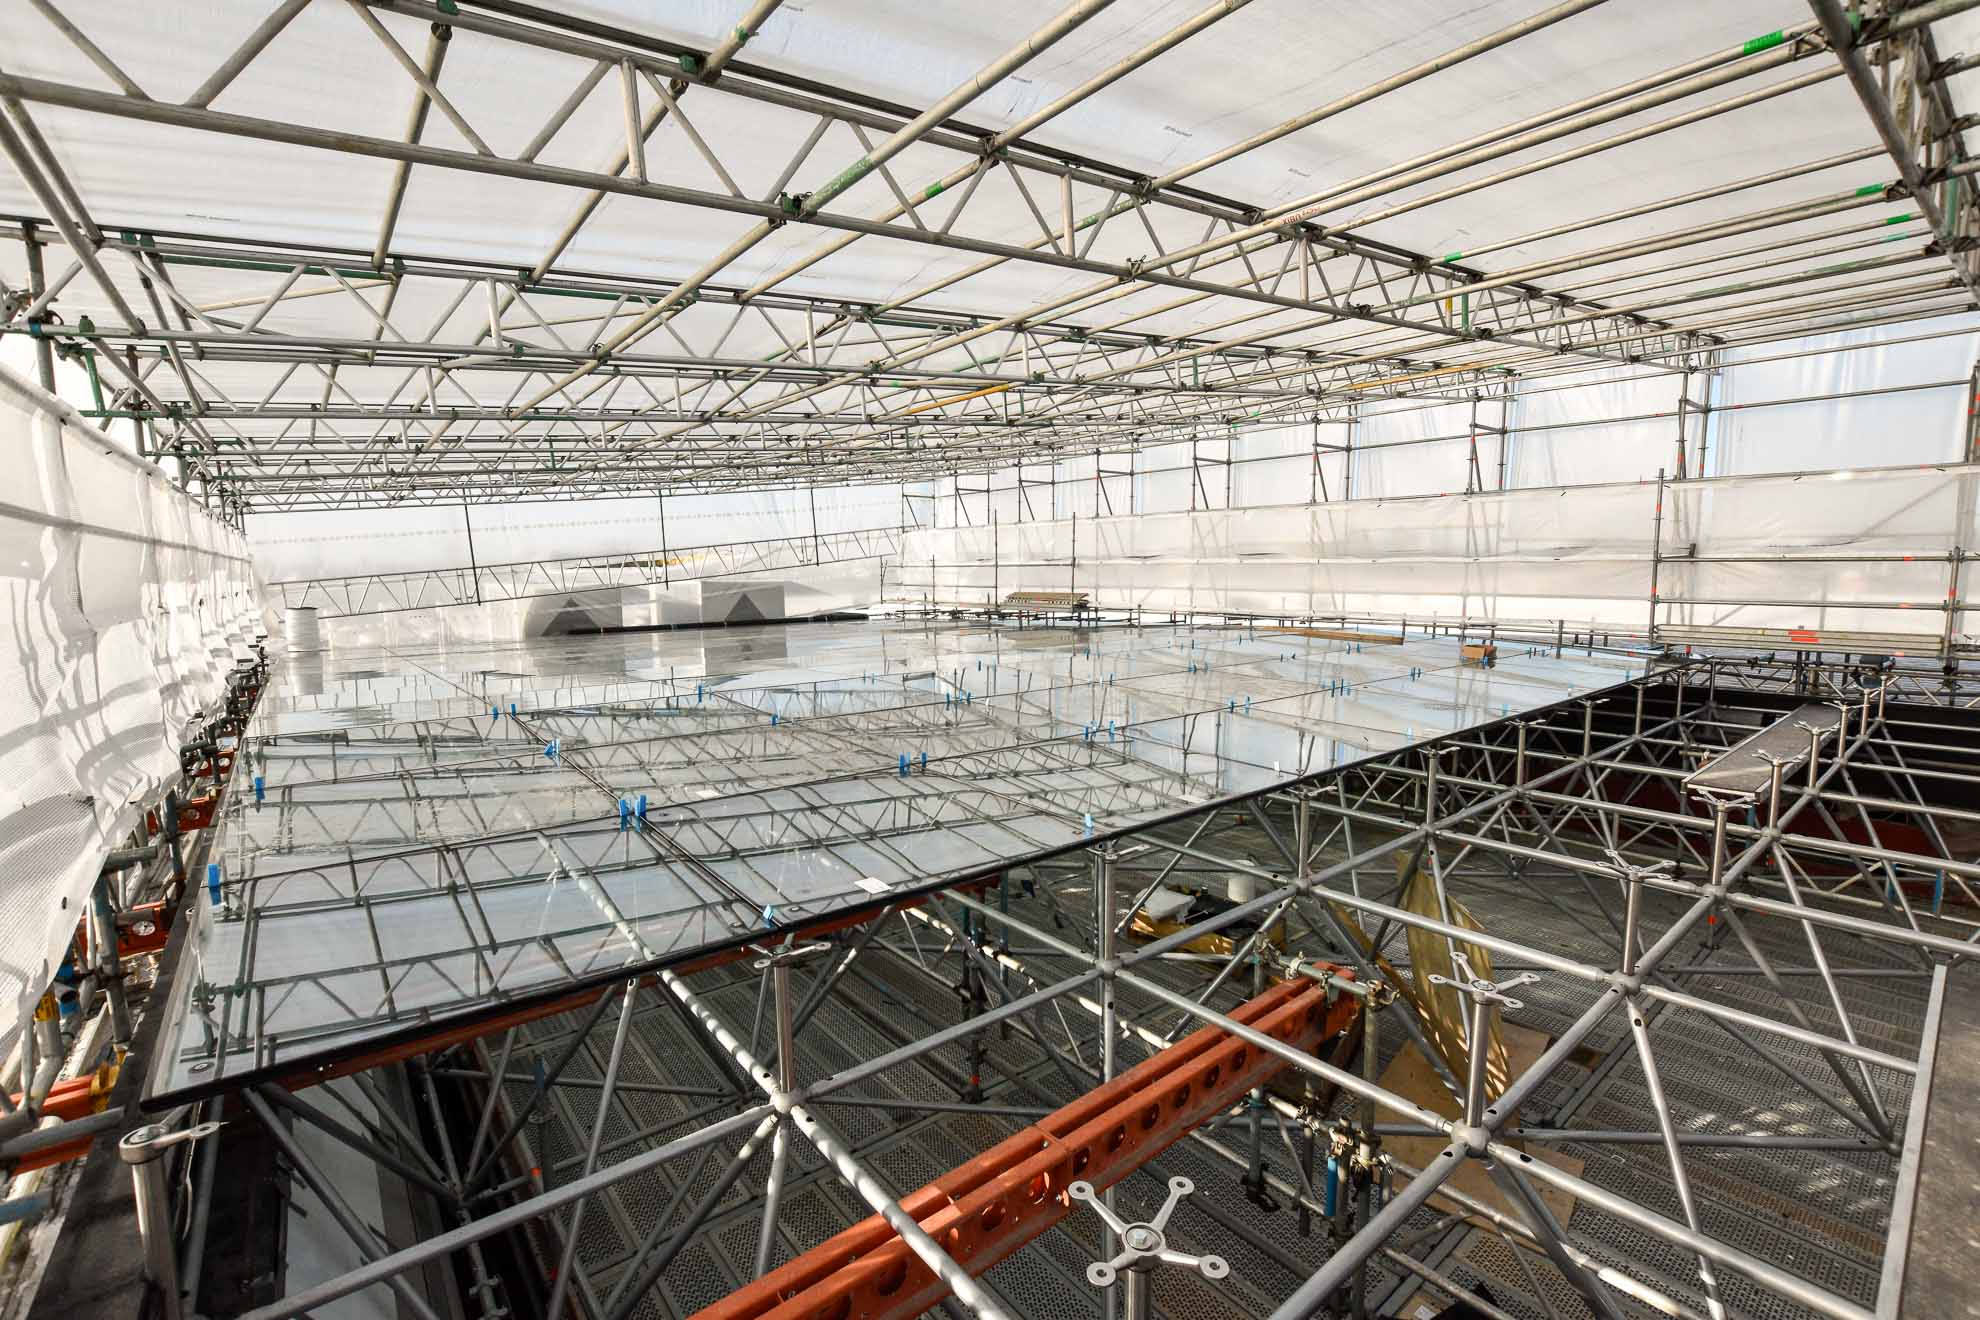 Porsche temporary roof and access scaffolding solution